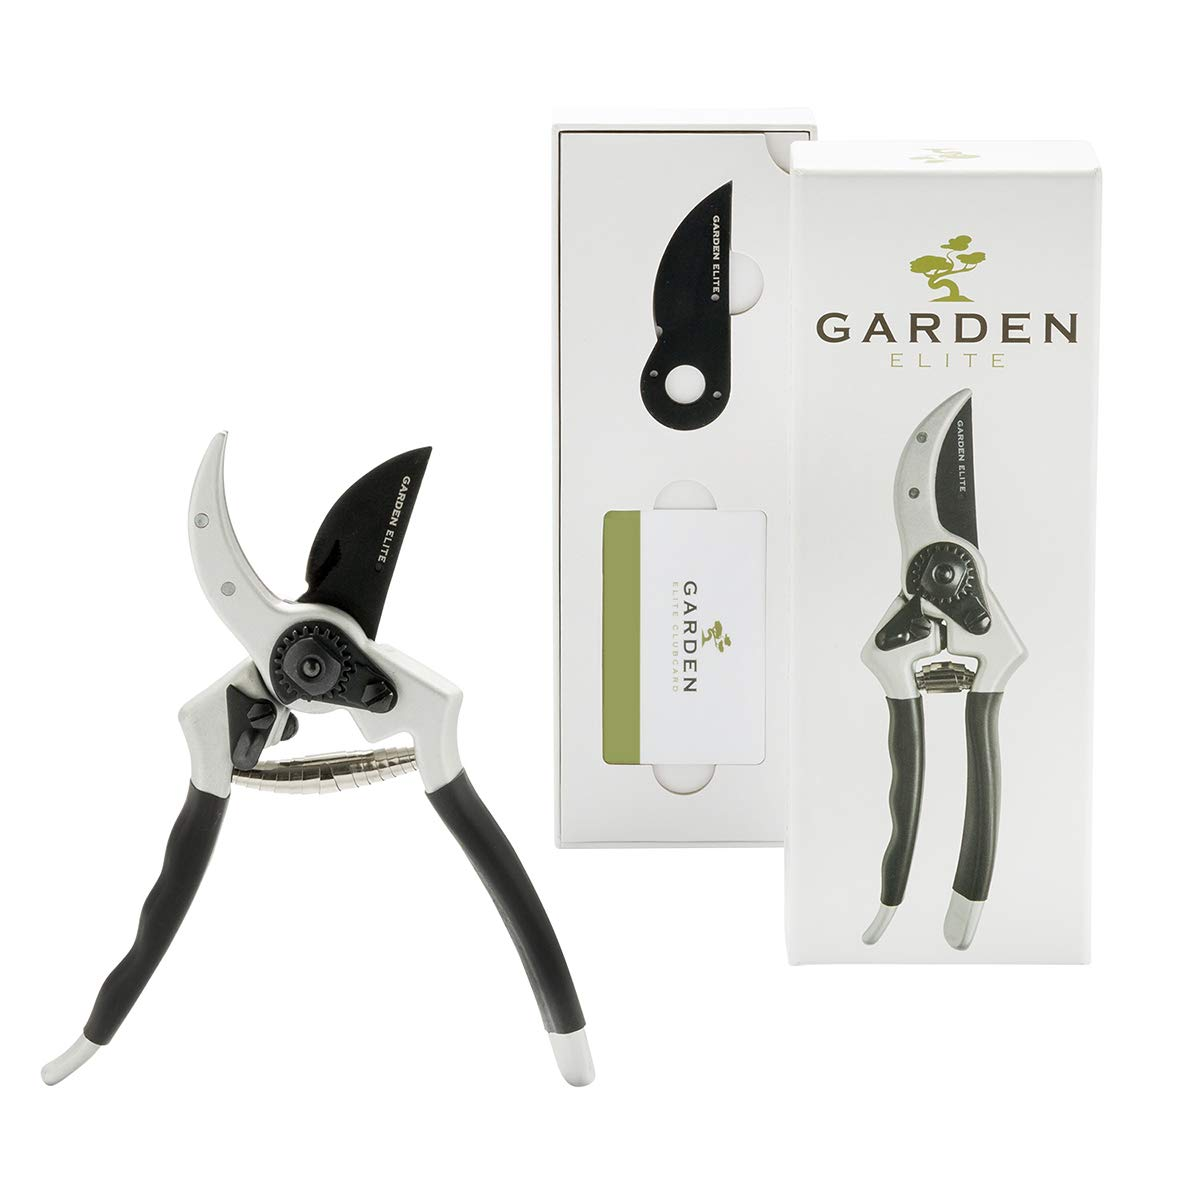 Razor Sharp Bypass Pruning Shears - Lifetime Replacement - Free Extra Blade, Spring & eBook - Japanese Steel - Premium Hand Pruner - Gardening Shear - Garden Clippers - Secateur with Ergonomic Handles by Garden Elite